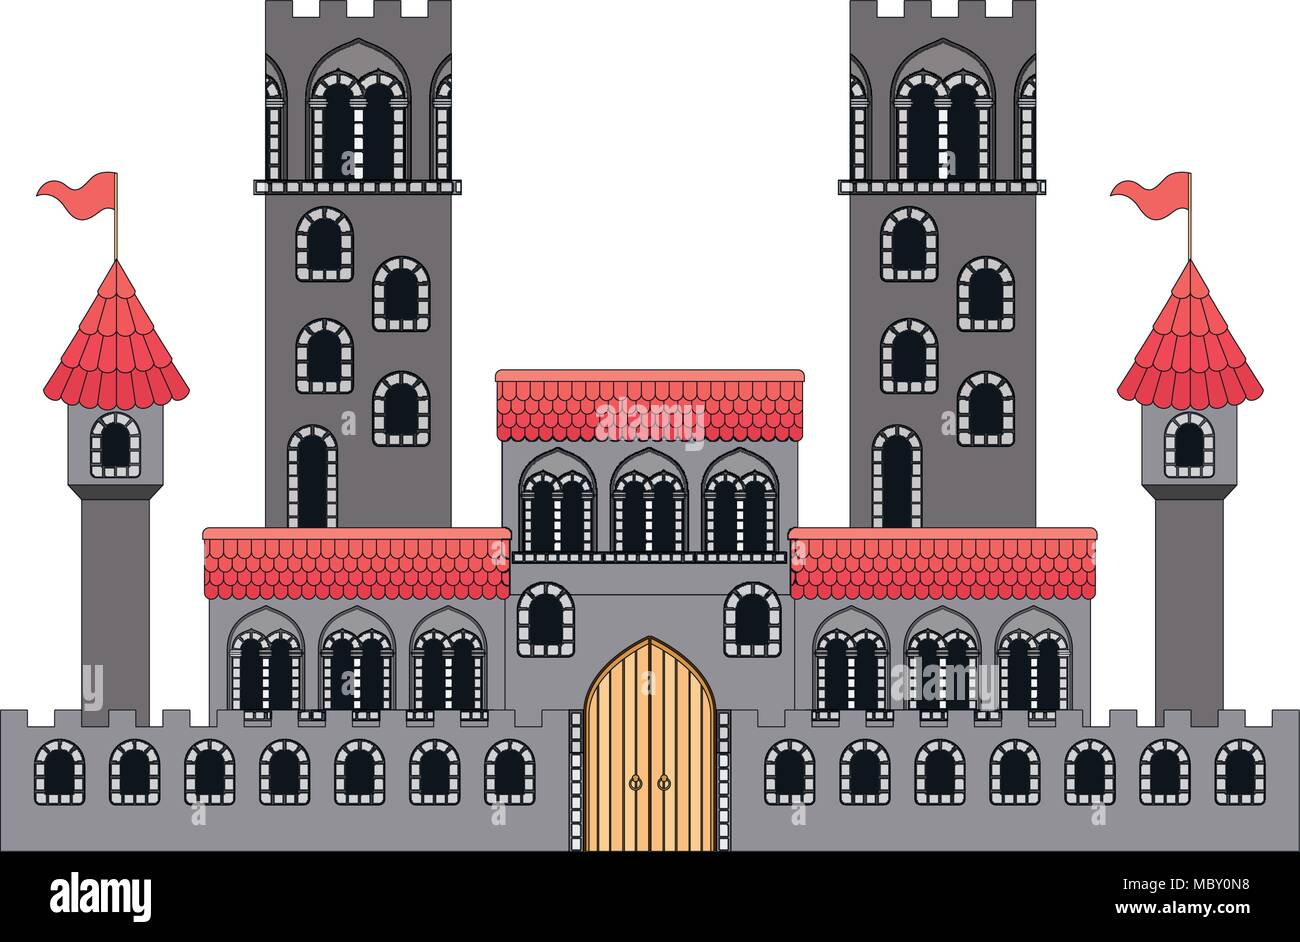 Medieval Castle With Flags Stock Vector Art Illustration Vector